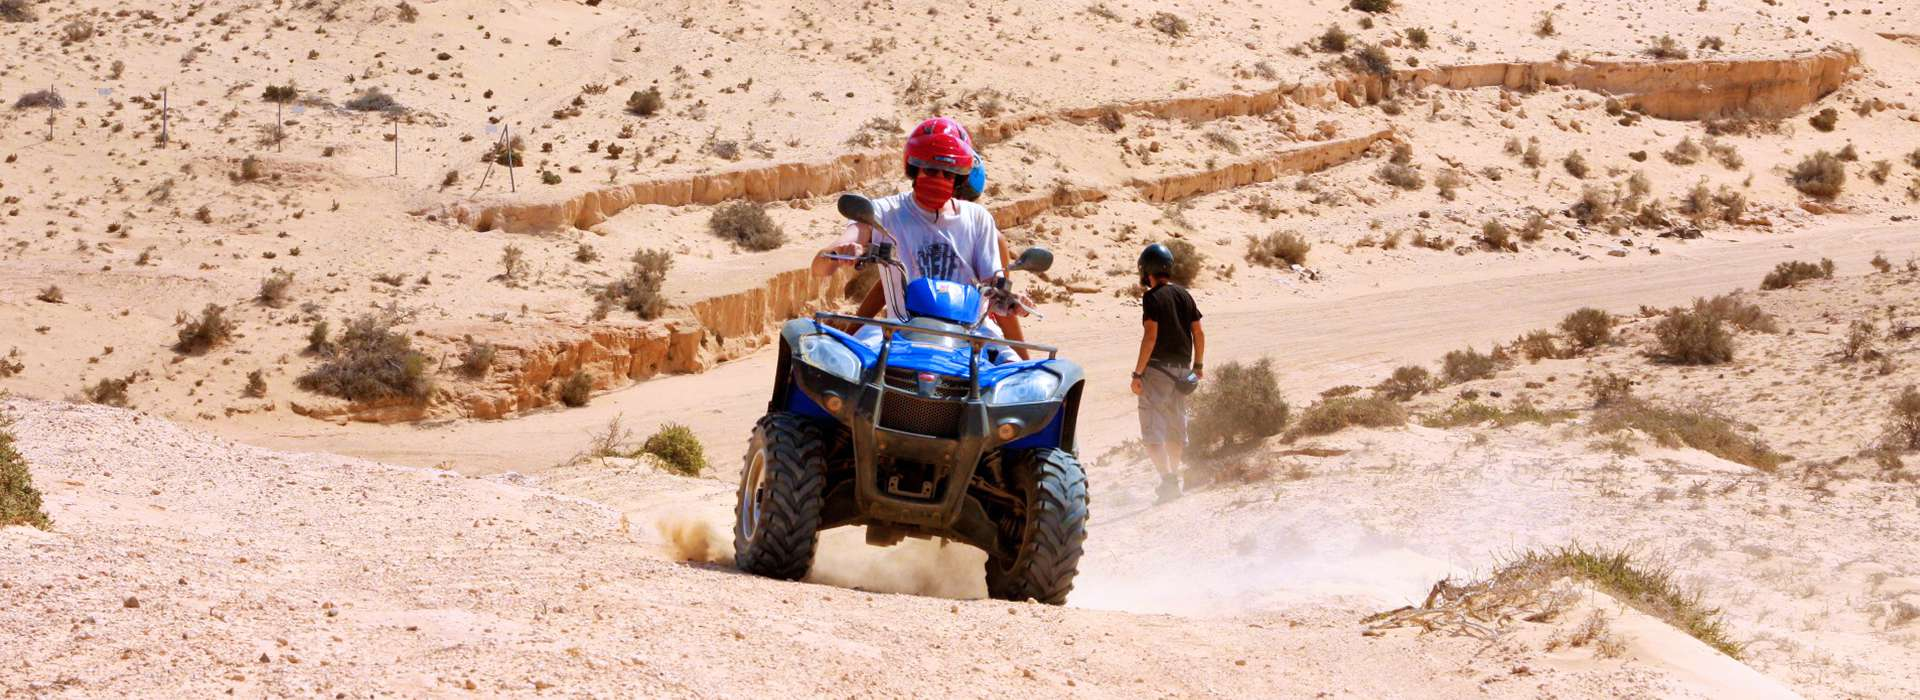 Quad Adventure & Buggy Safari